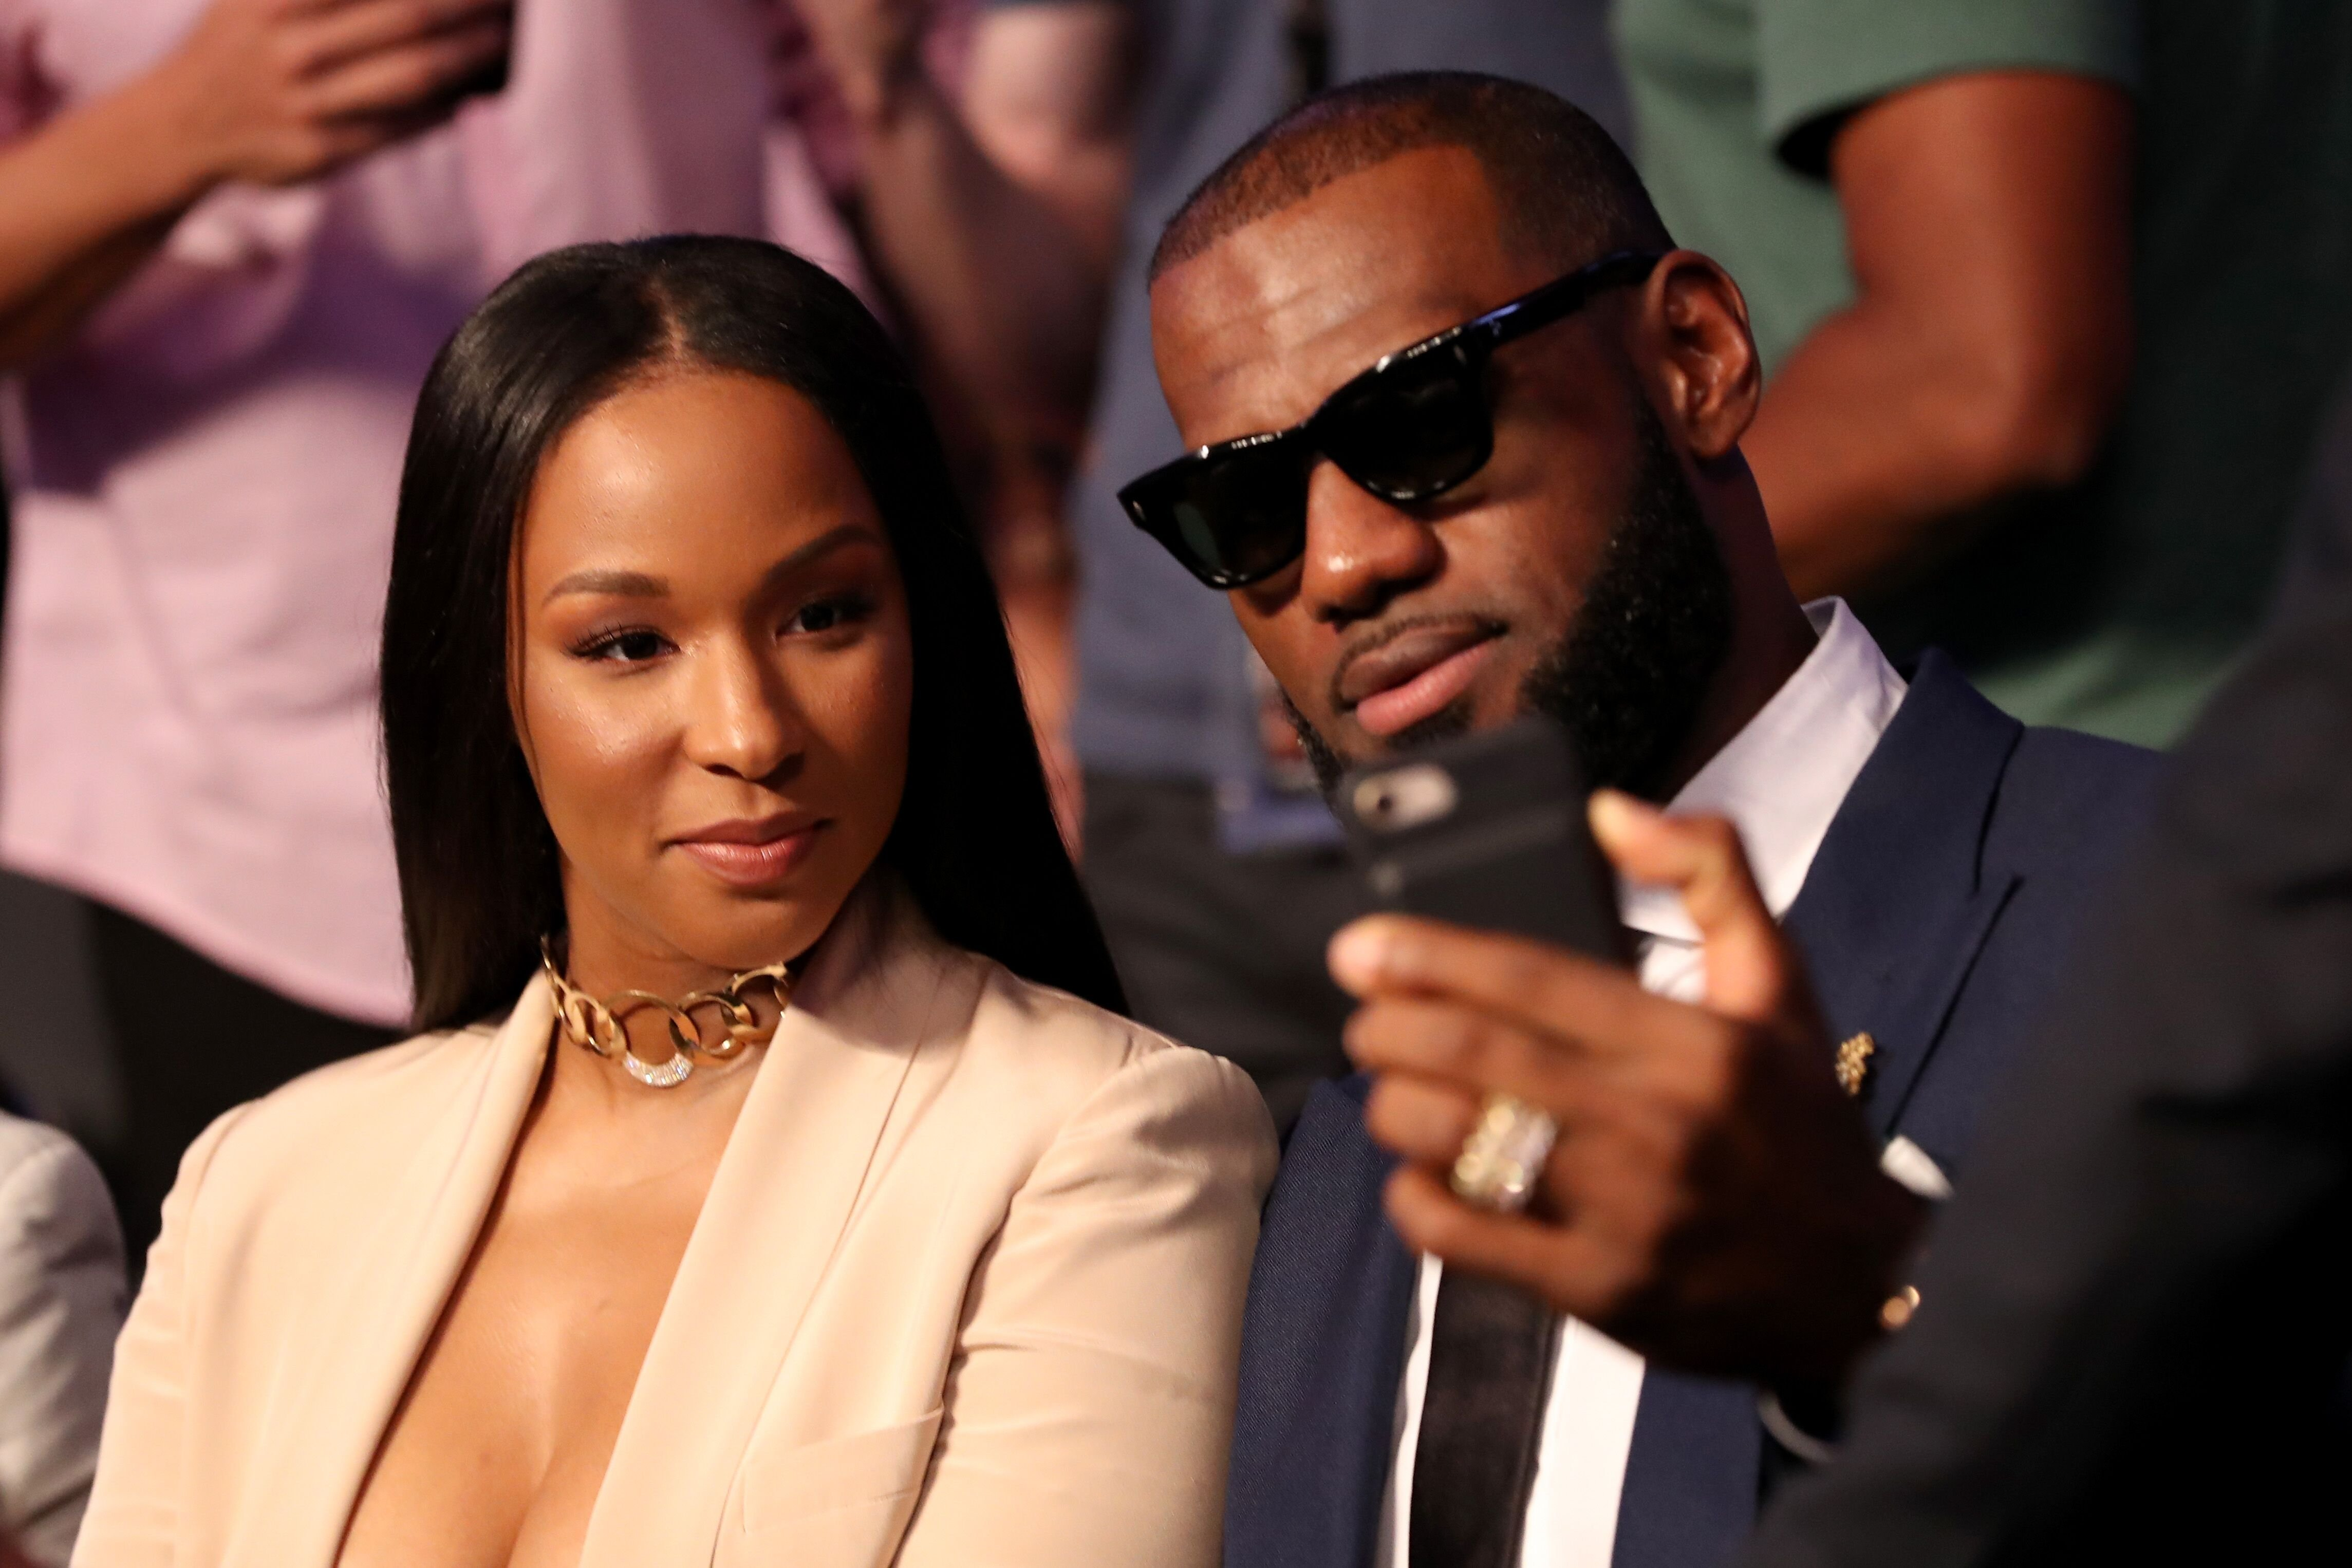 Basketball star LeBron James and his wife Savannah Brinson/ Source: Getty Images